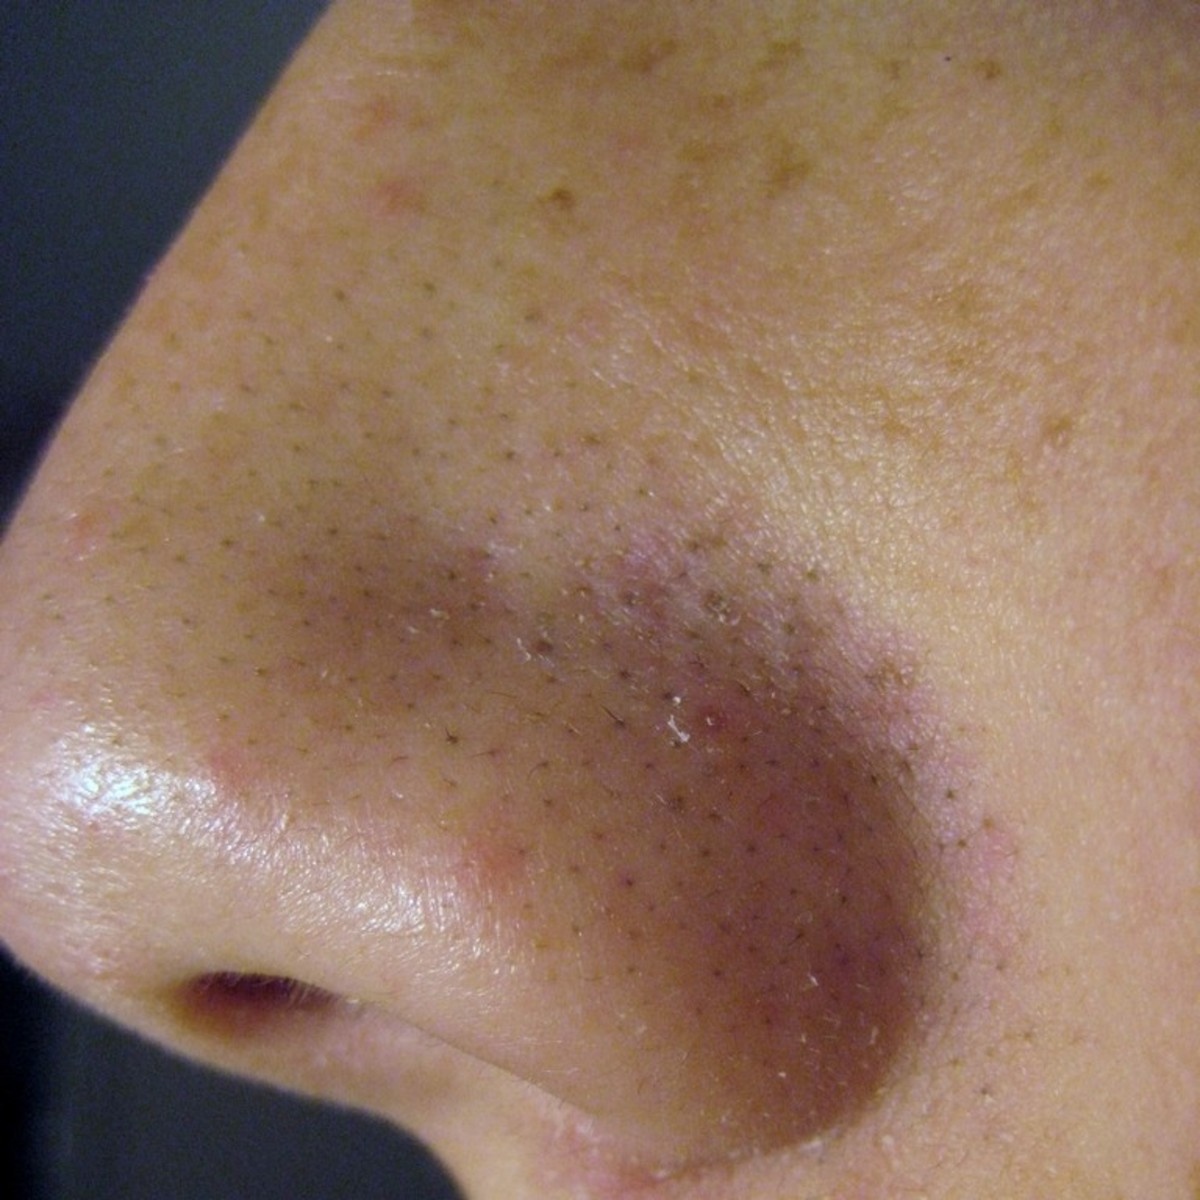 Blackheads are commonly found on the nose, chin and cheek areas. this picture shows them on a 14 yr old male.